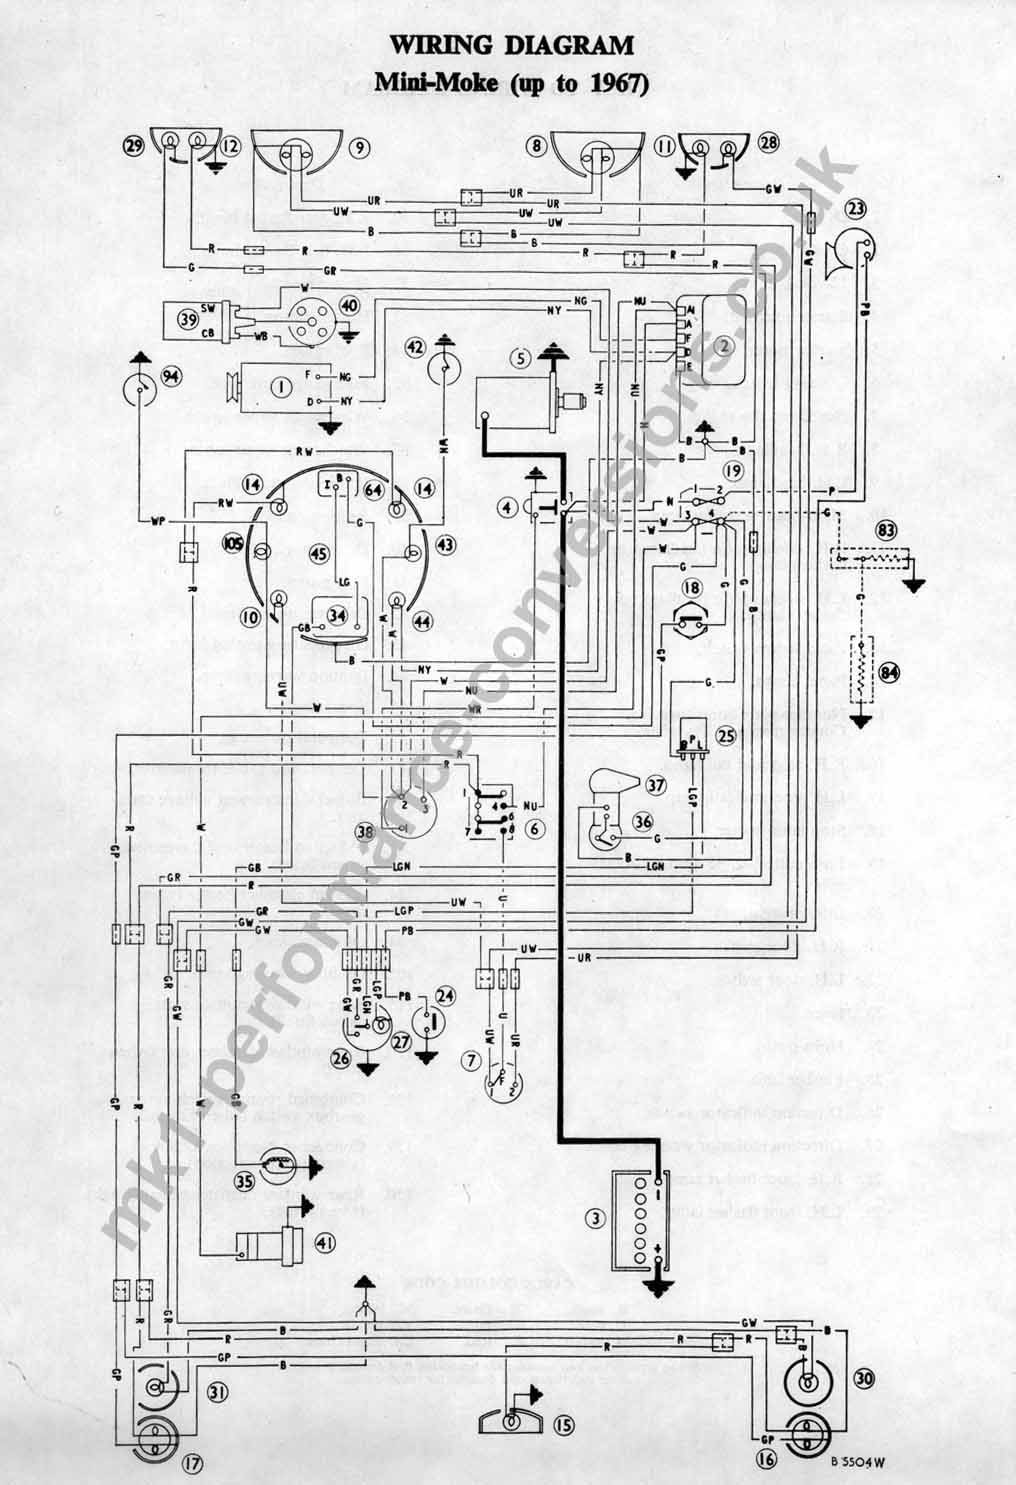 mk1_moke_wiring technical (electrical) escort mk1 wiring diagram at metegol.co